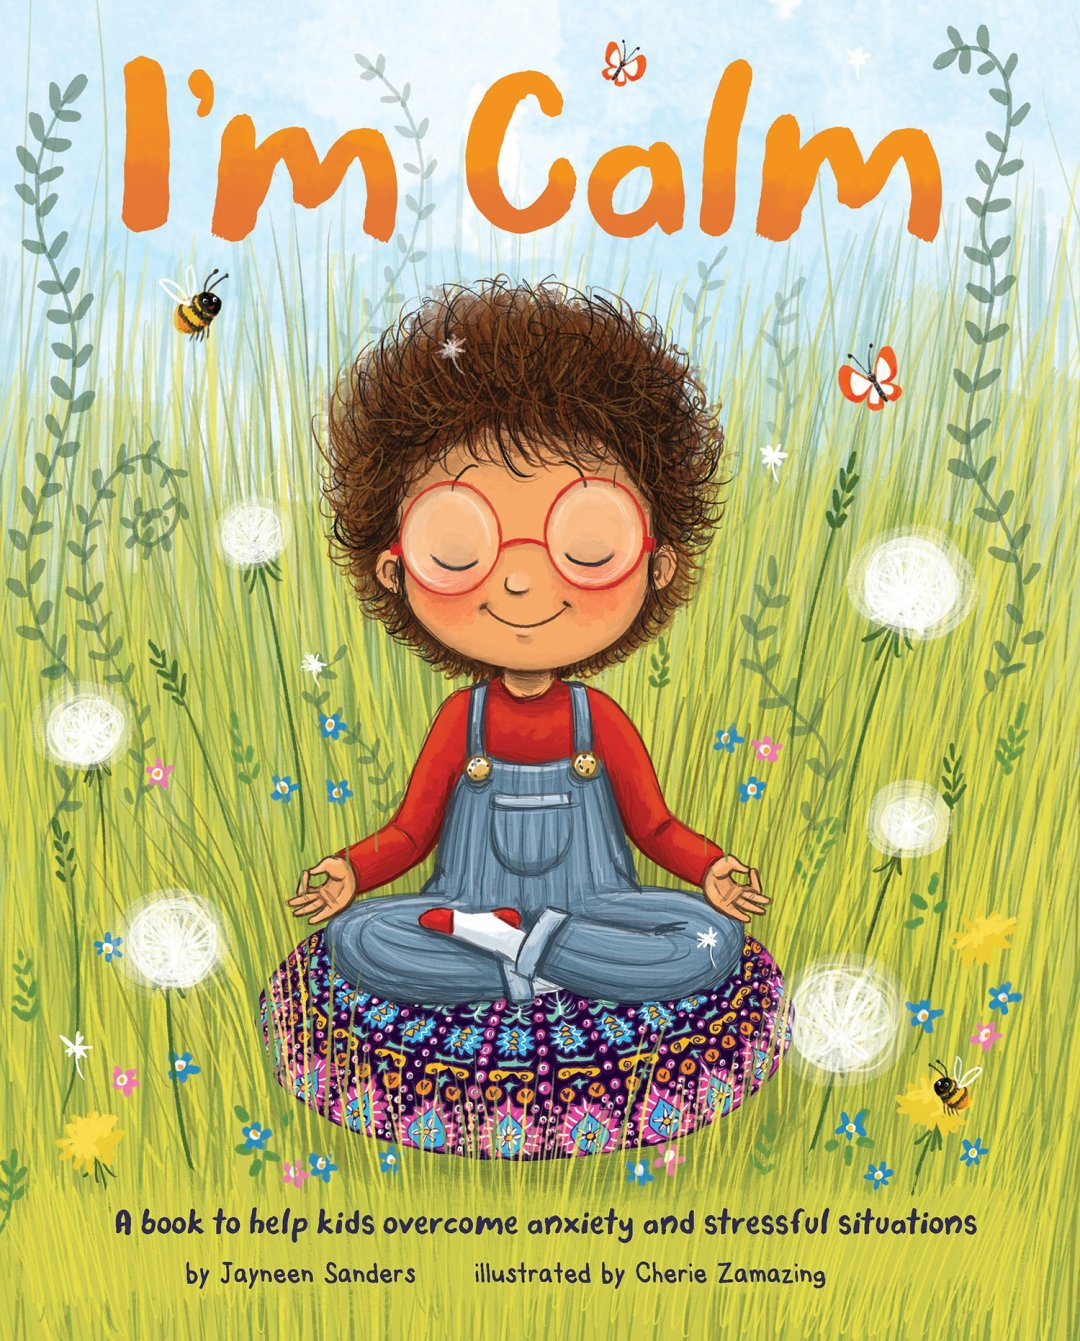 Book Cover Image for I'm Calm